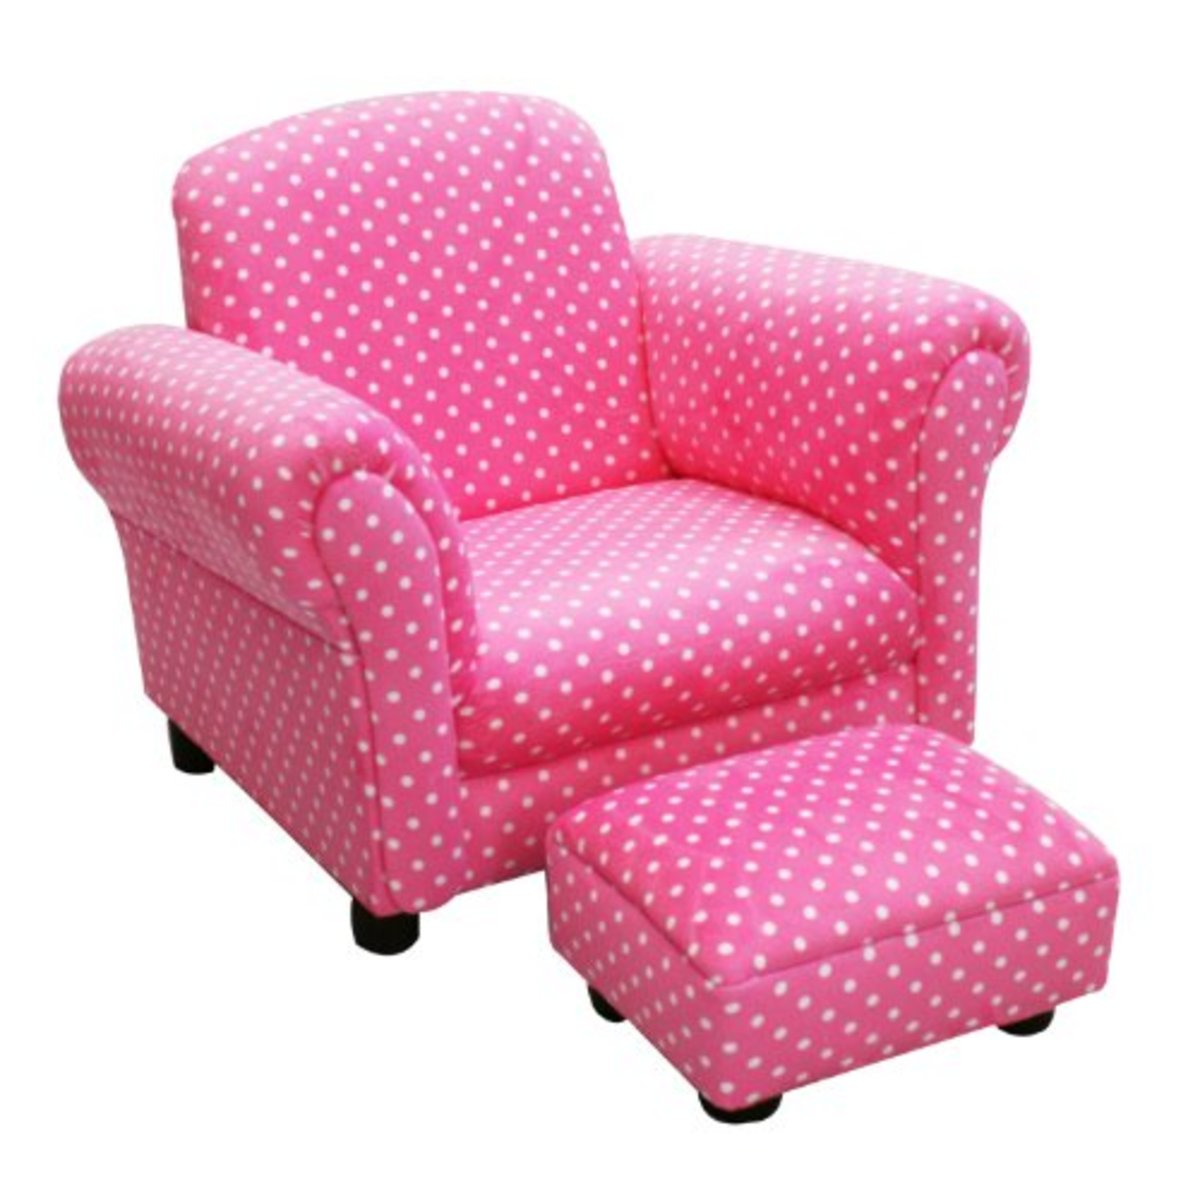 Little Girls' Pink Polka Dot Upholstered Chair and Ottoman Set